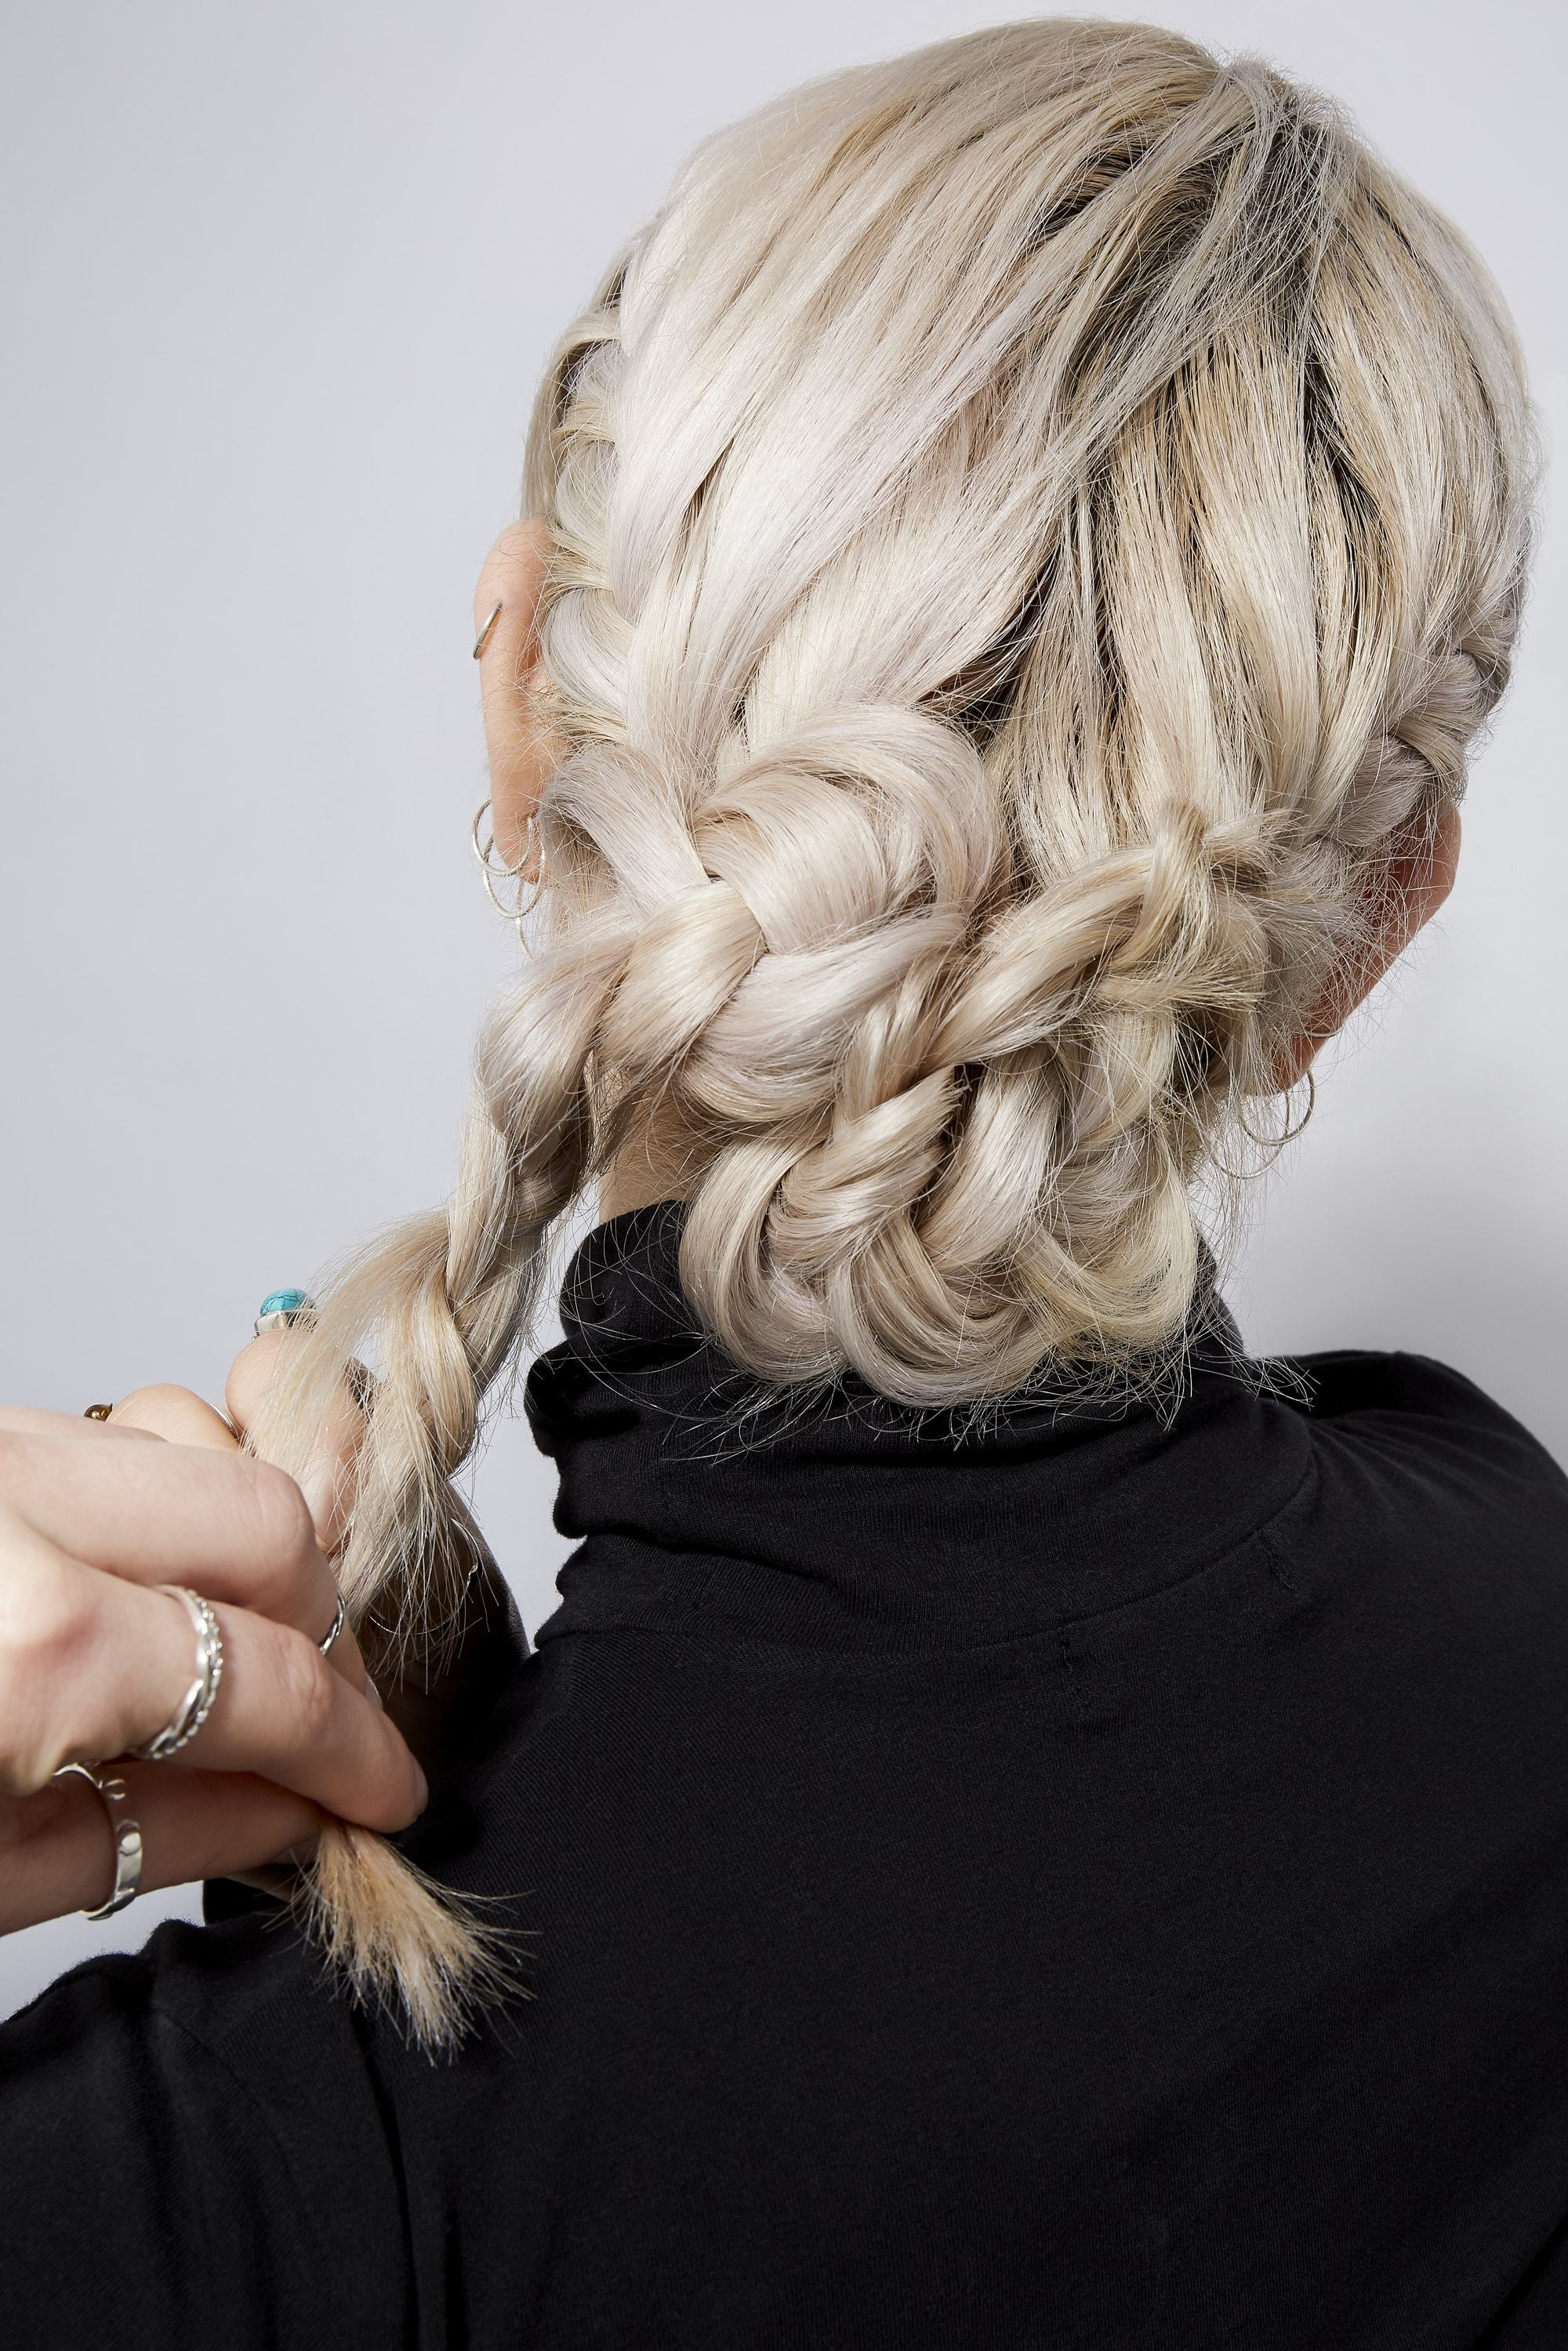 French Braid Bun Tutorial How To Create The Look In 10 Easy Steps